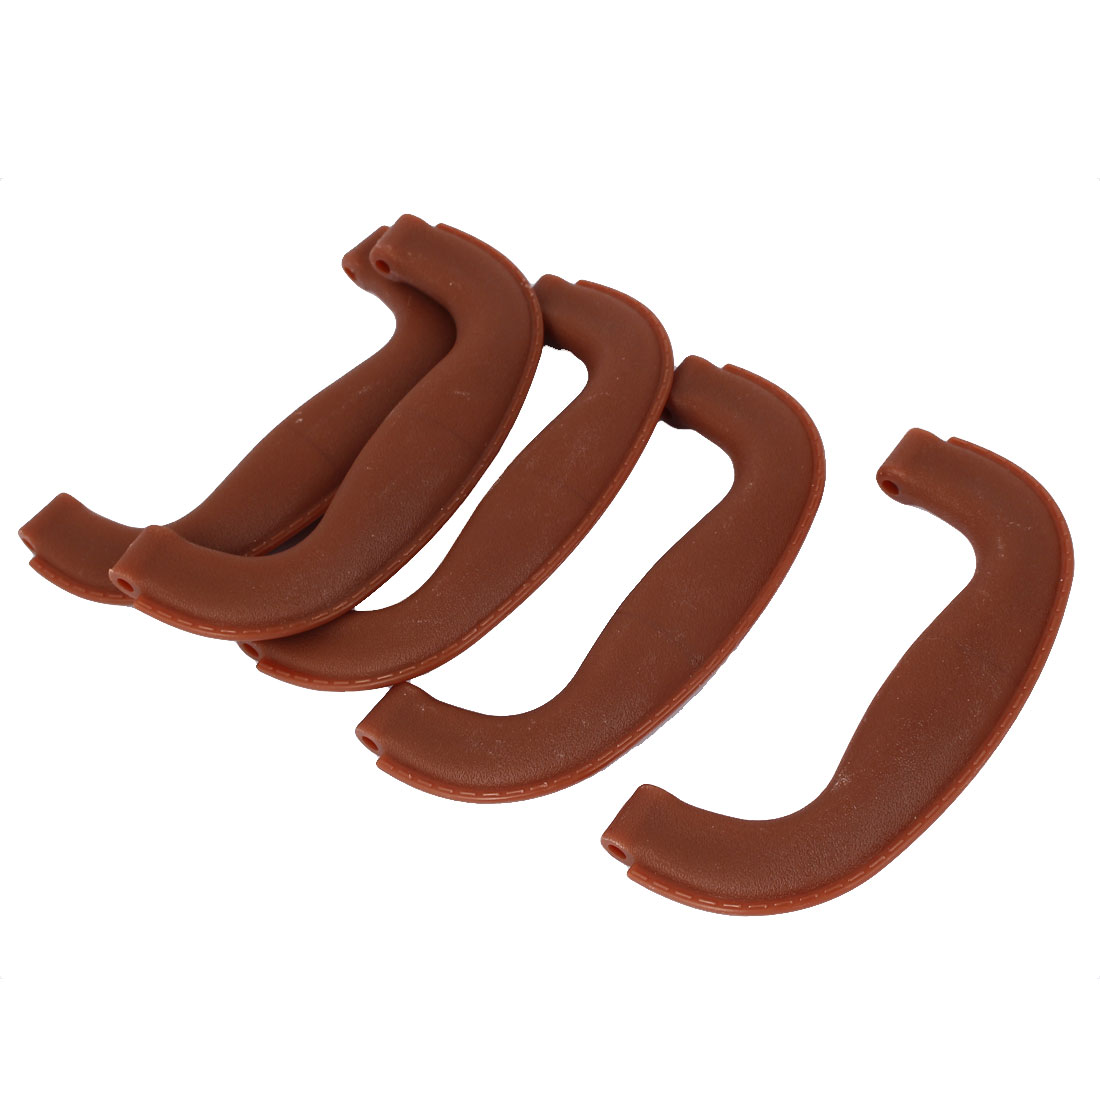 Home Cabin Drawer Box Plastic Bowing Pull Handle Knob Brown 5pcs